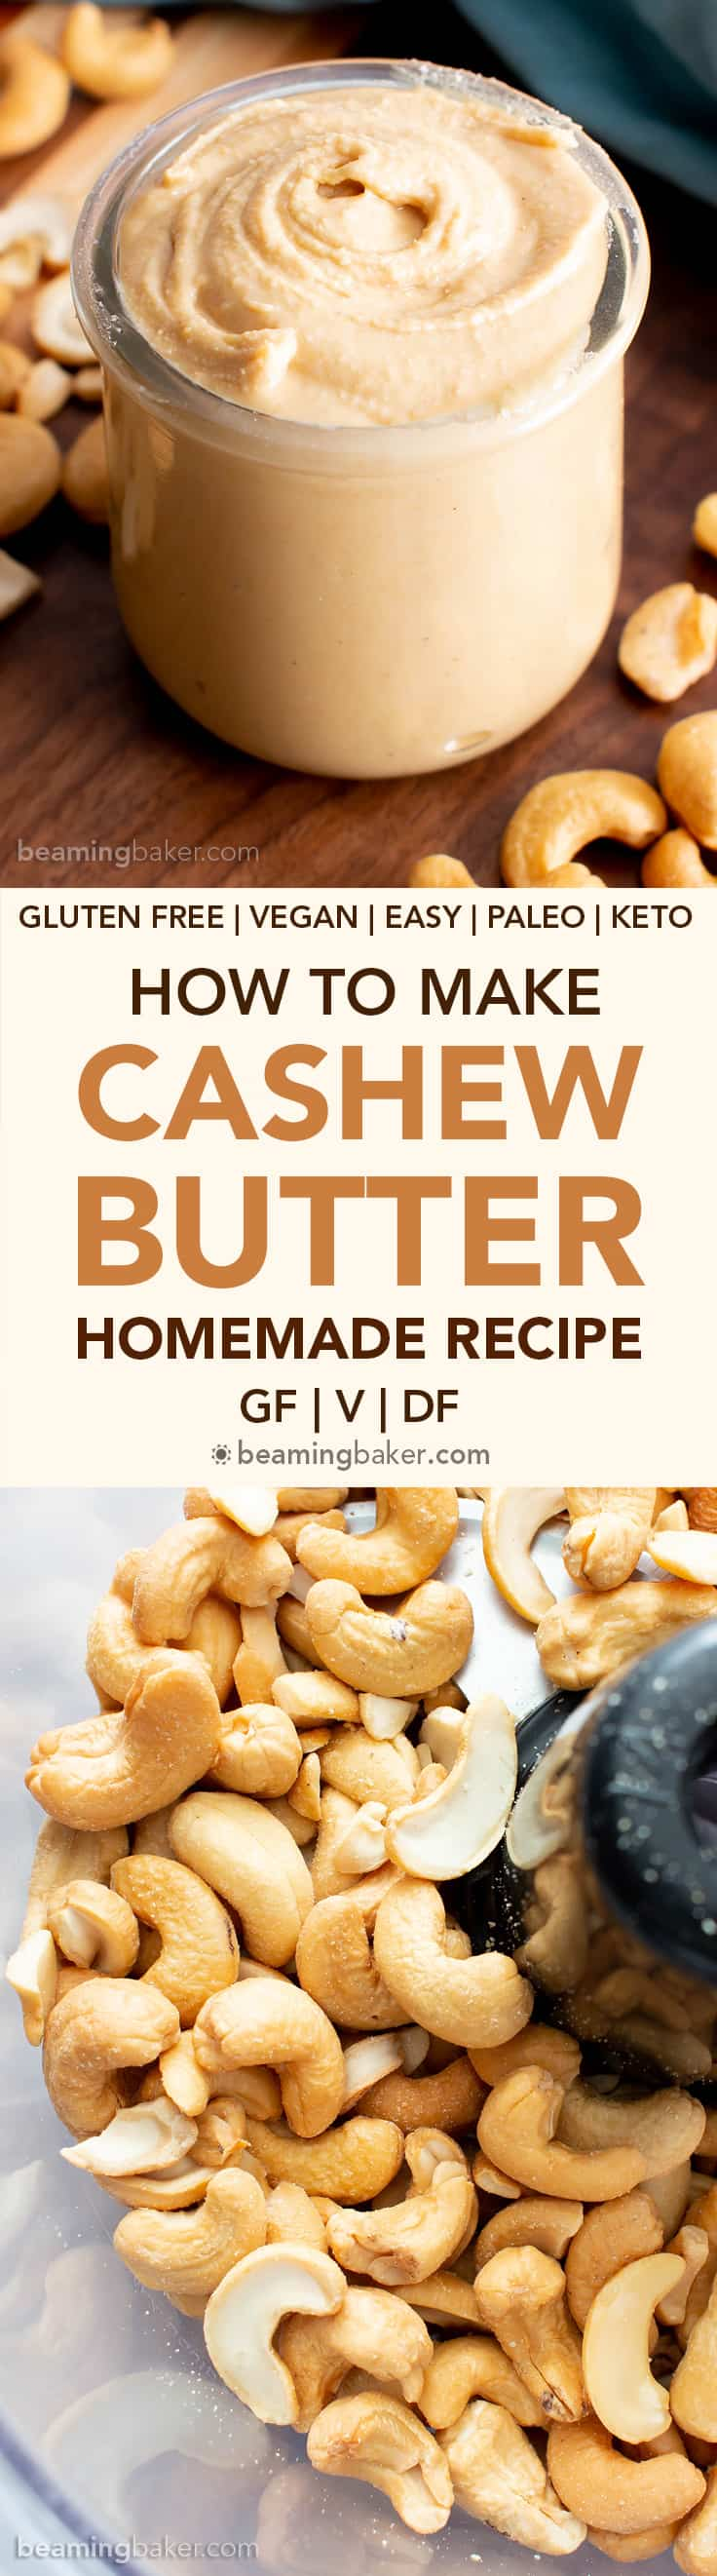 How to Make Homemade Cashew Butter Recipe: this easy homemade cashew butter recipe makes the best creamy, smooth cashew butter! Step-by-step photo tutorial with tips & recipes for your homemade cashew butter! #Cashews #CashewButter #Cashew #Homemade #Vegan | Recipe at BeamingBaker.com